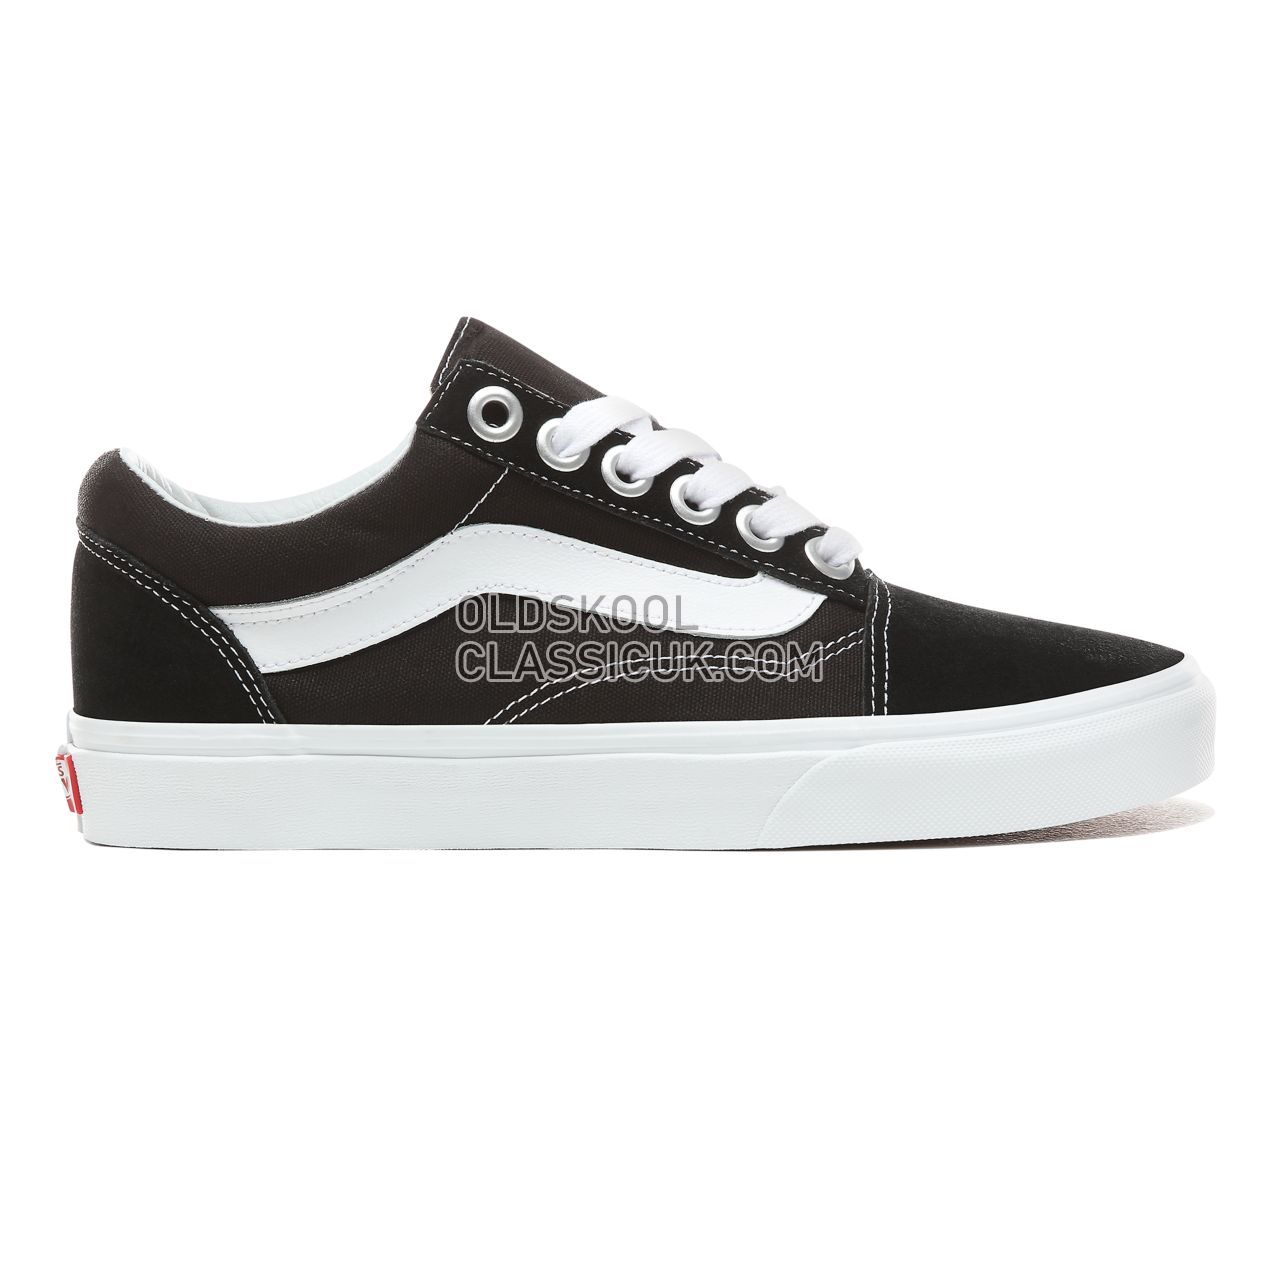 4797d80f0c0 Vans Old Skool OS Sneakers Mens Womens Unisex Black/True White VN0A3WLY6BT  Shoes ...